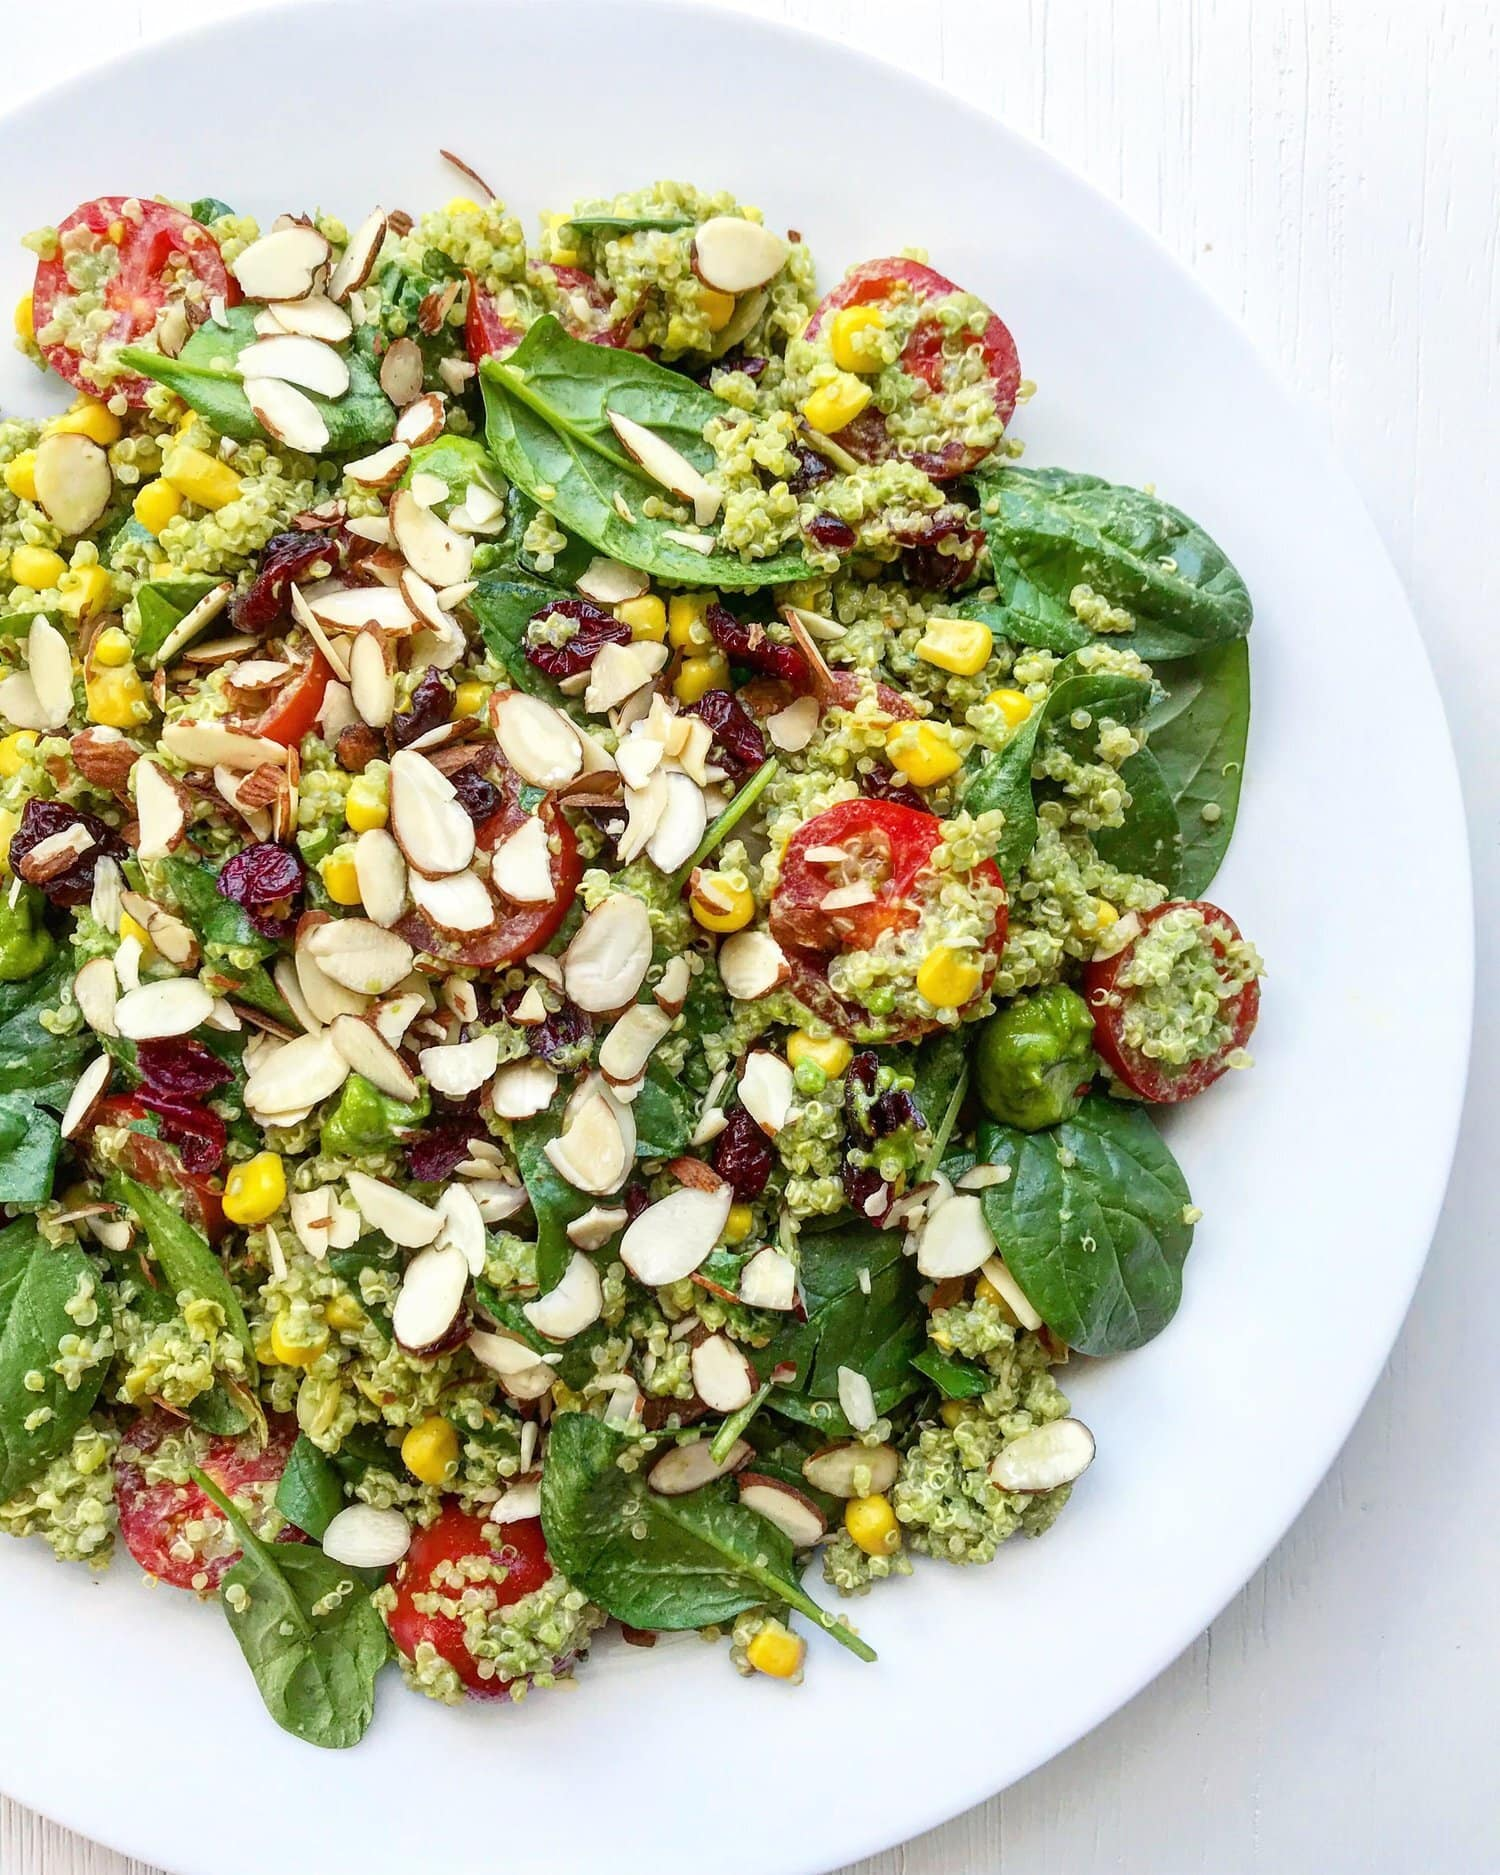 Cranberry, quinoa and pesto salad topped with flaked almonds served on a white plate.